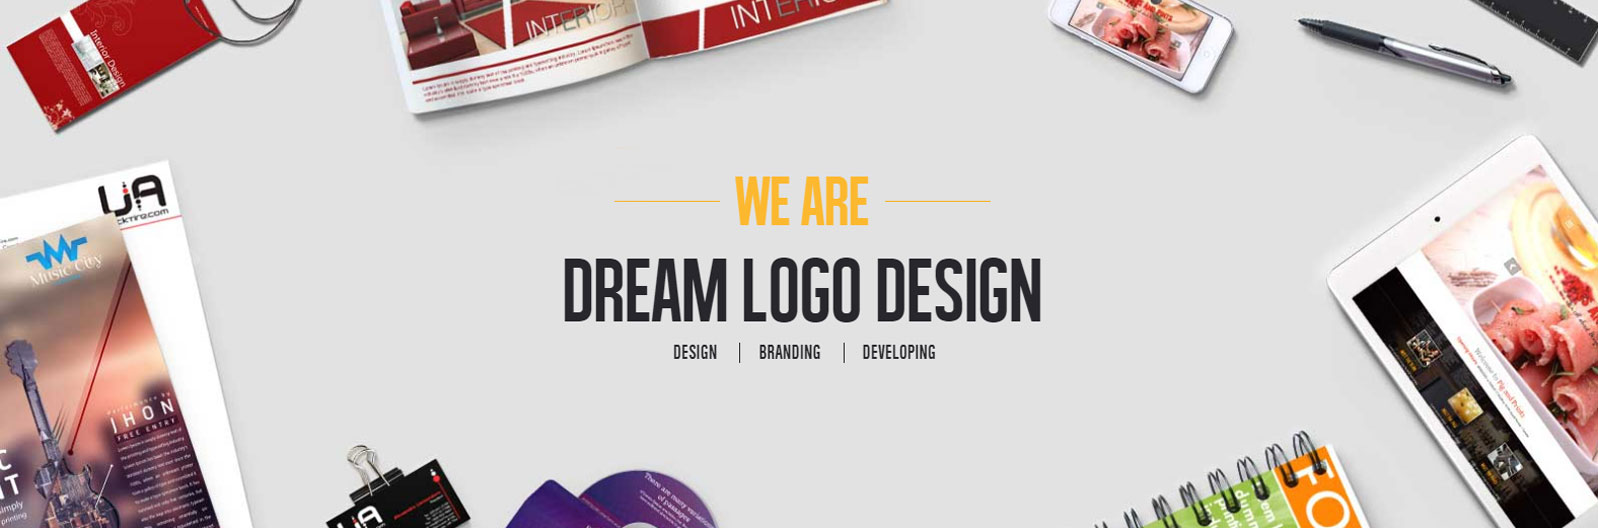 Band Auction Entertainment Logo Design – DreamLogoDesign